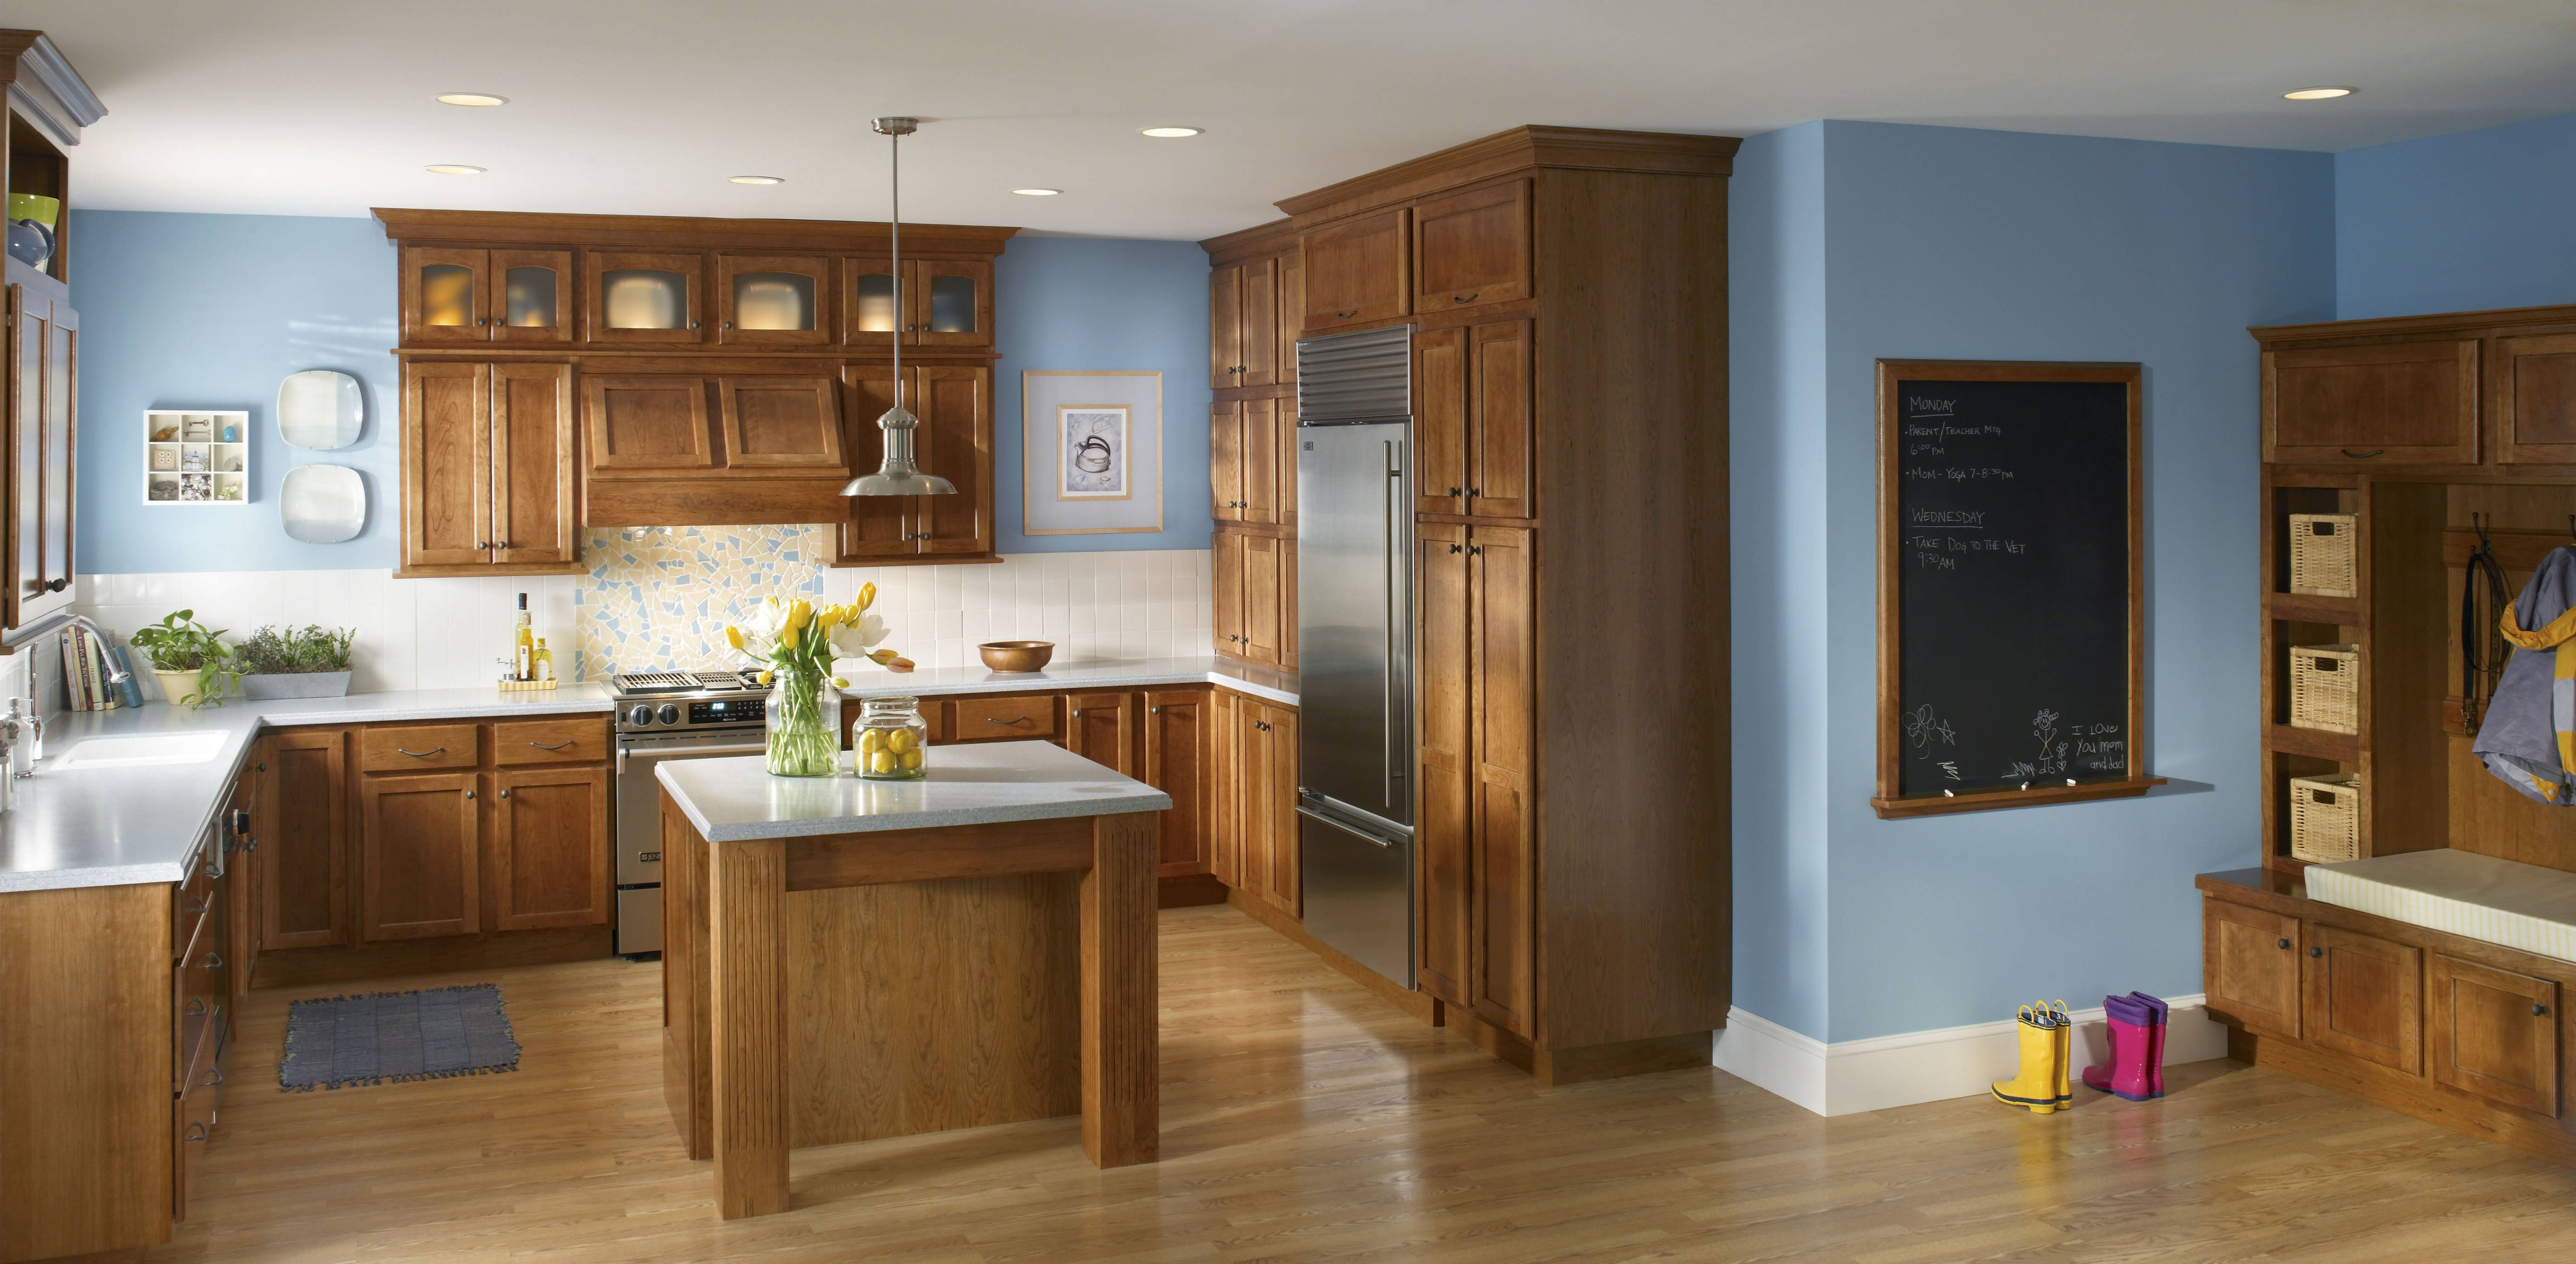 Blue walls with brown kitchen